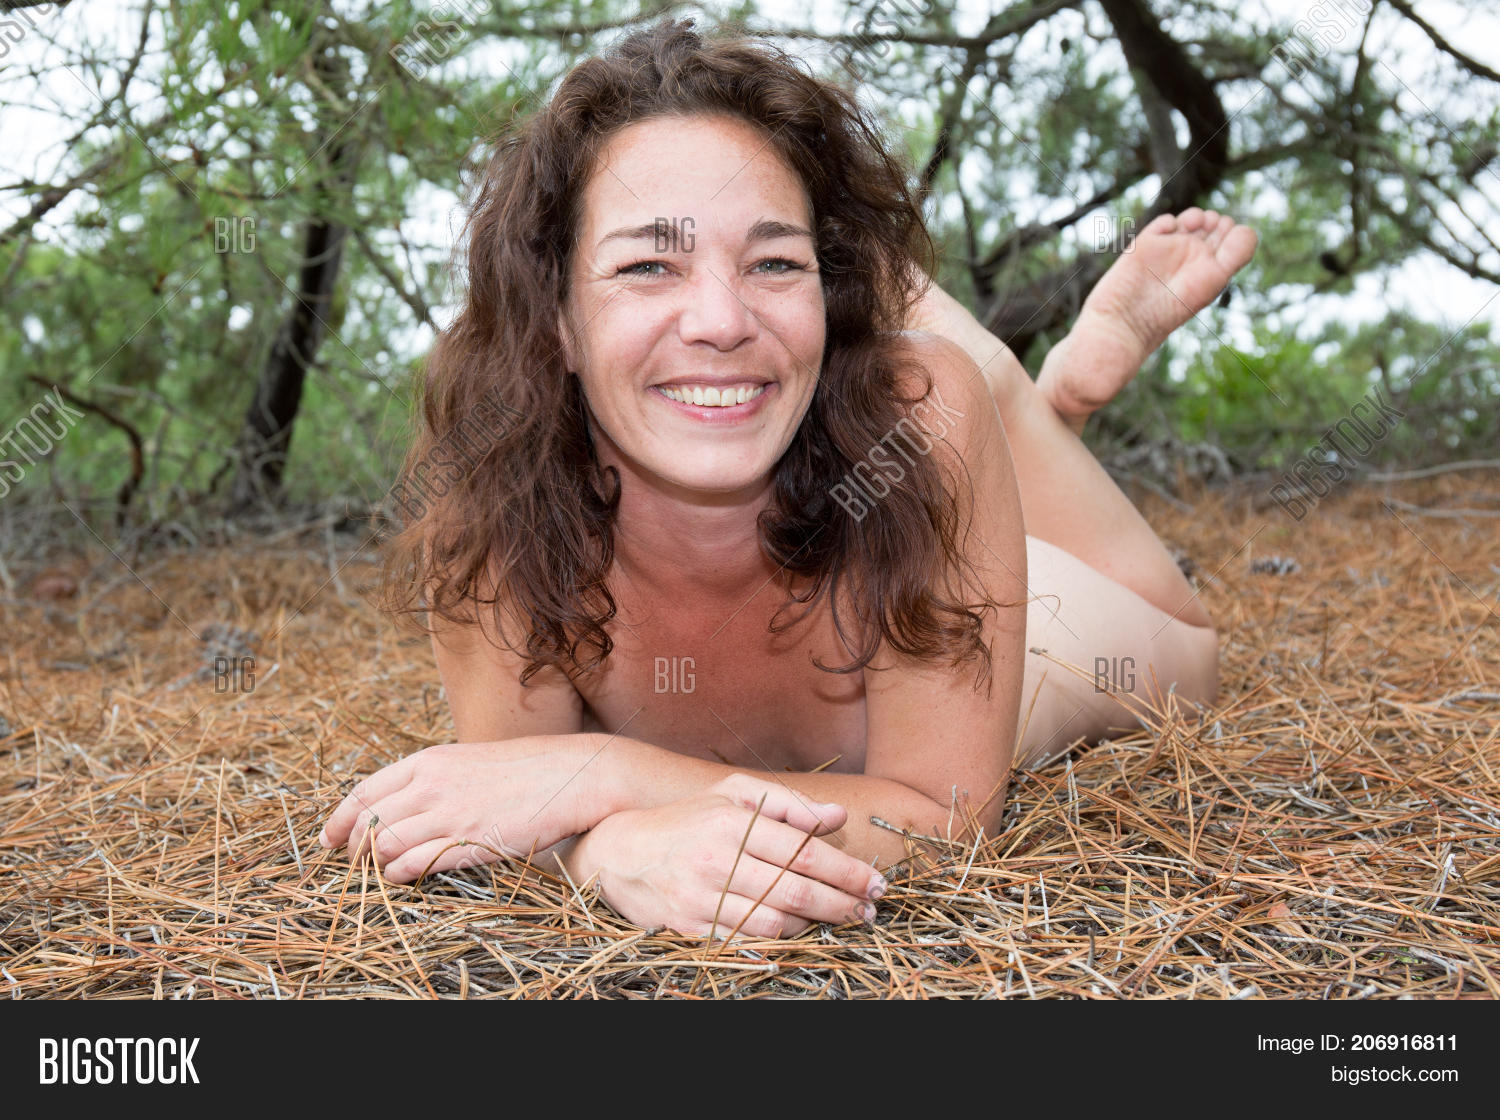 Sexy poses naked woman at the beach